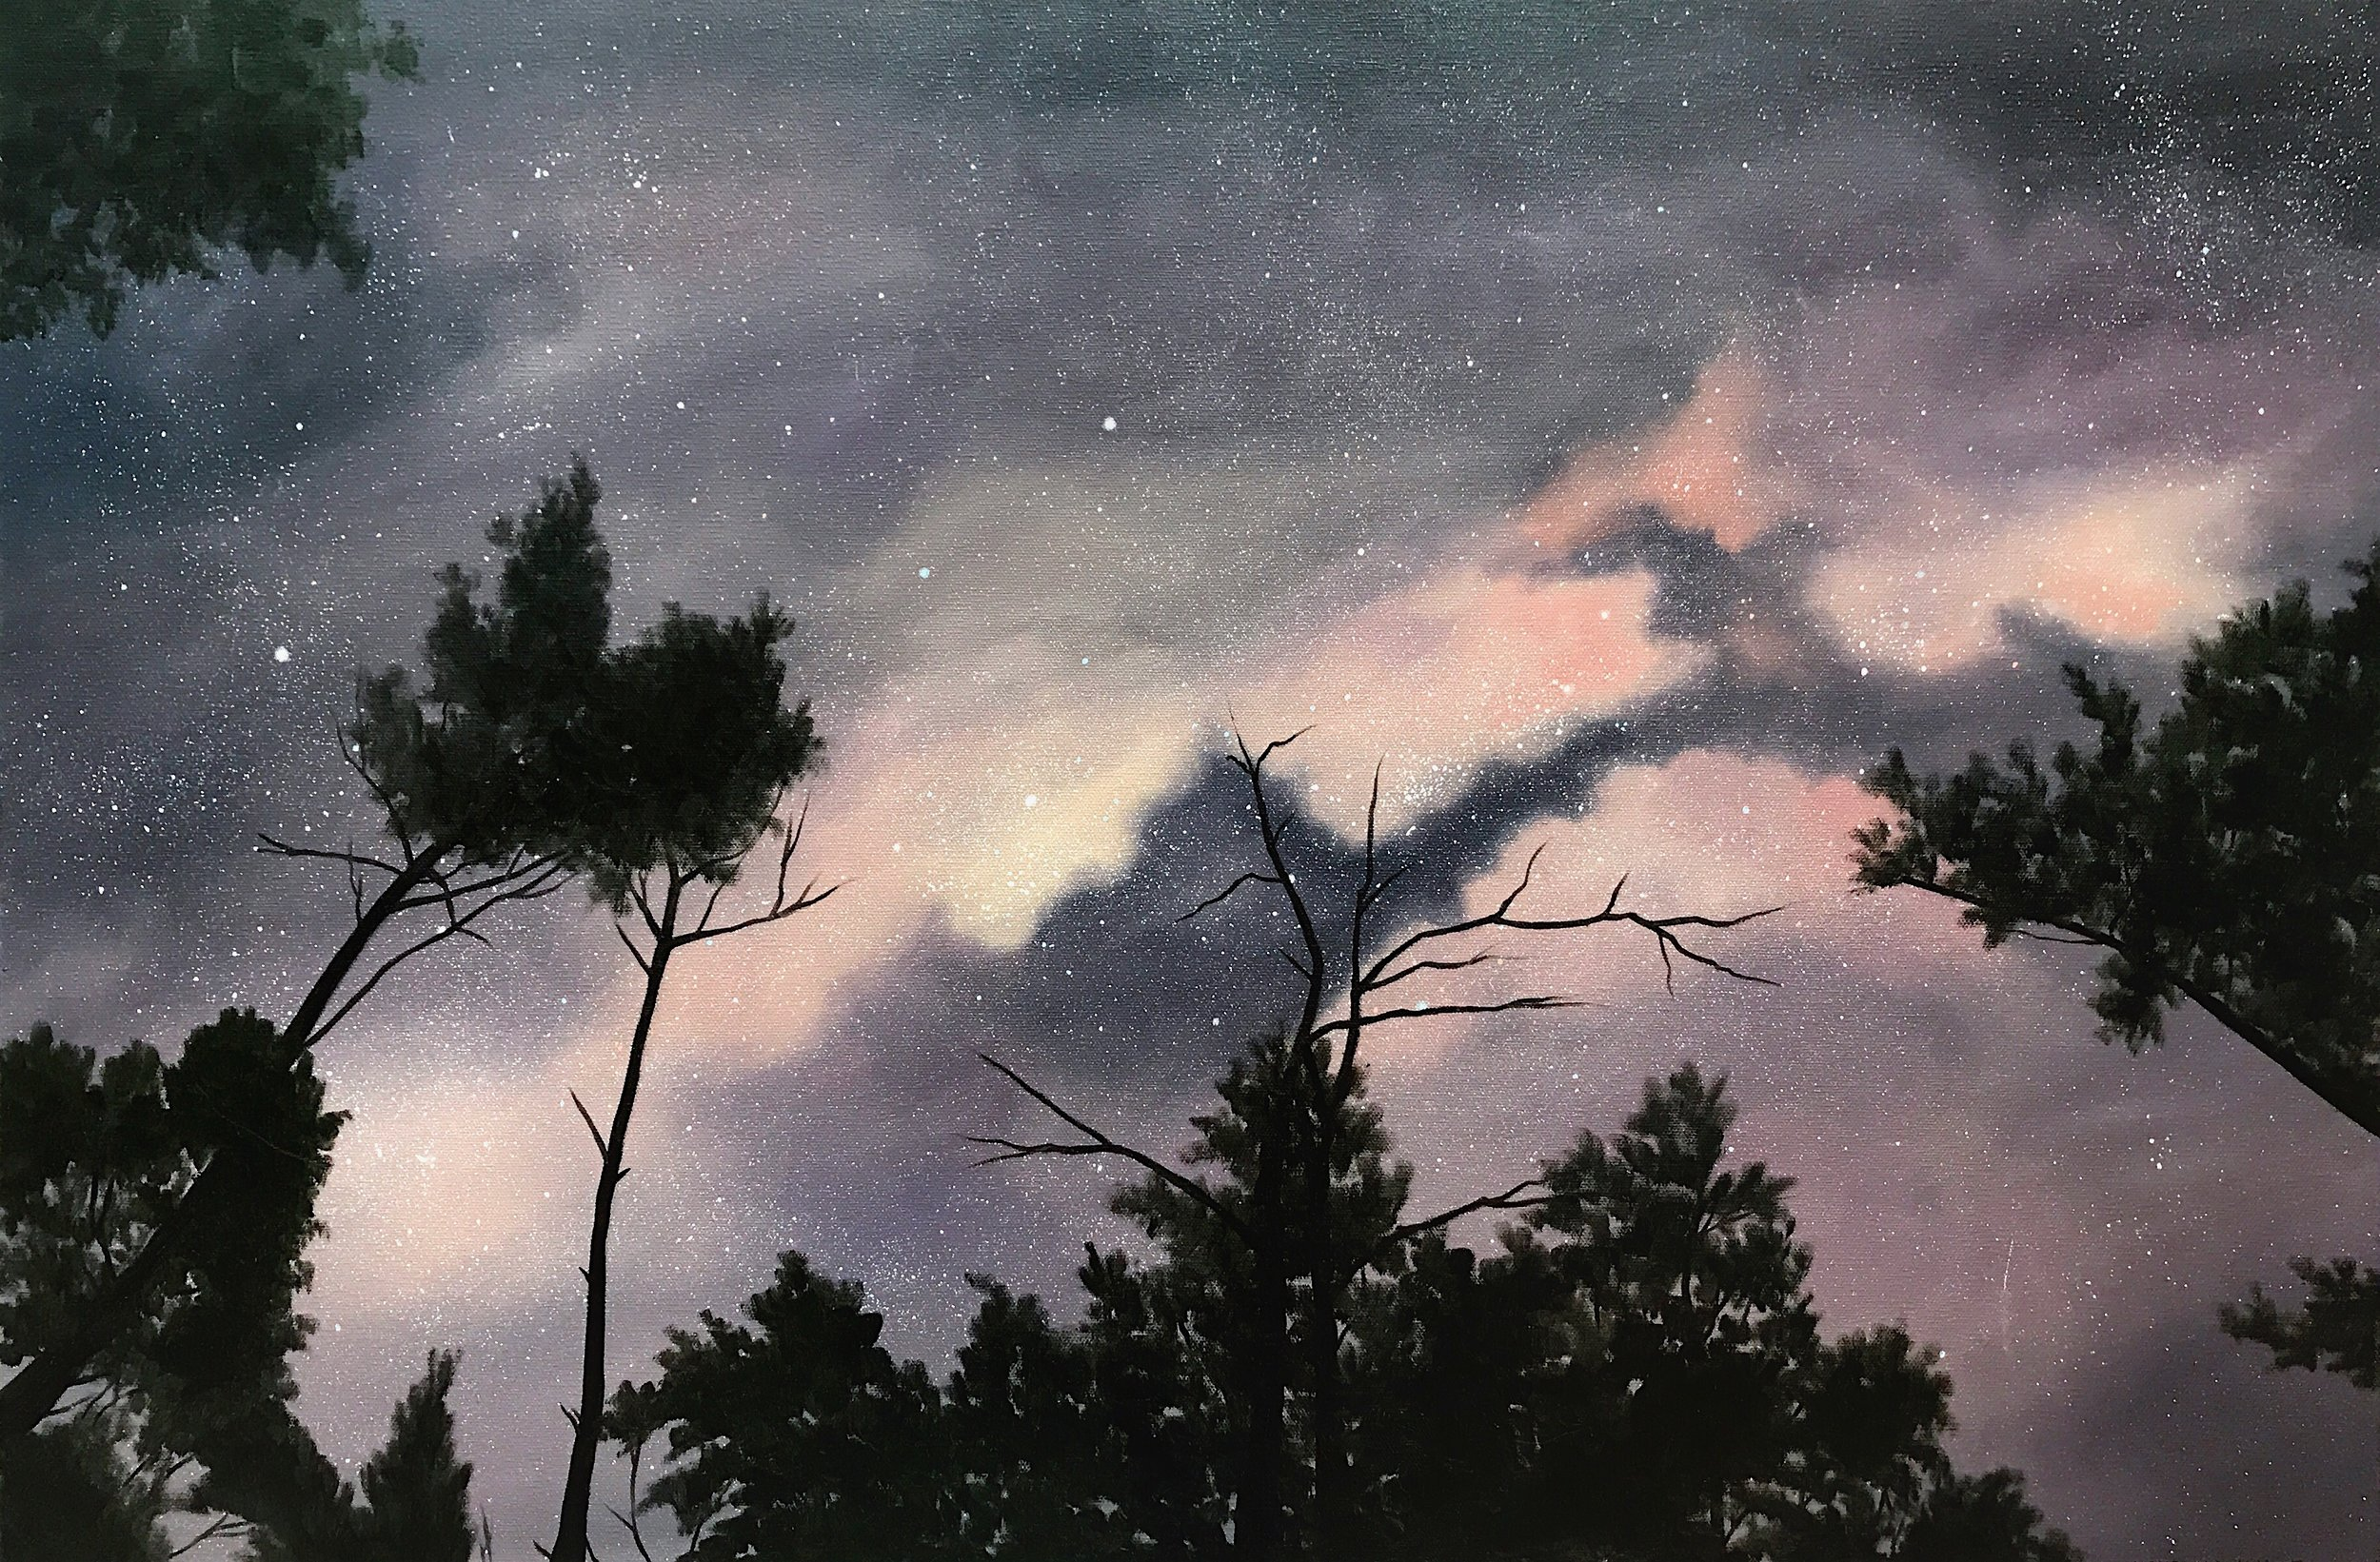 """Red River Gorge Night Sky,36""""x24"""", Oil Paint on Canvas, 2017"""